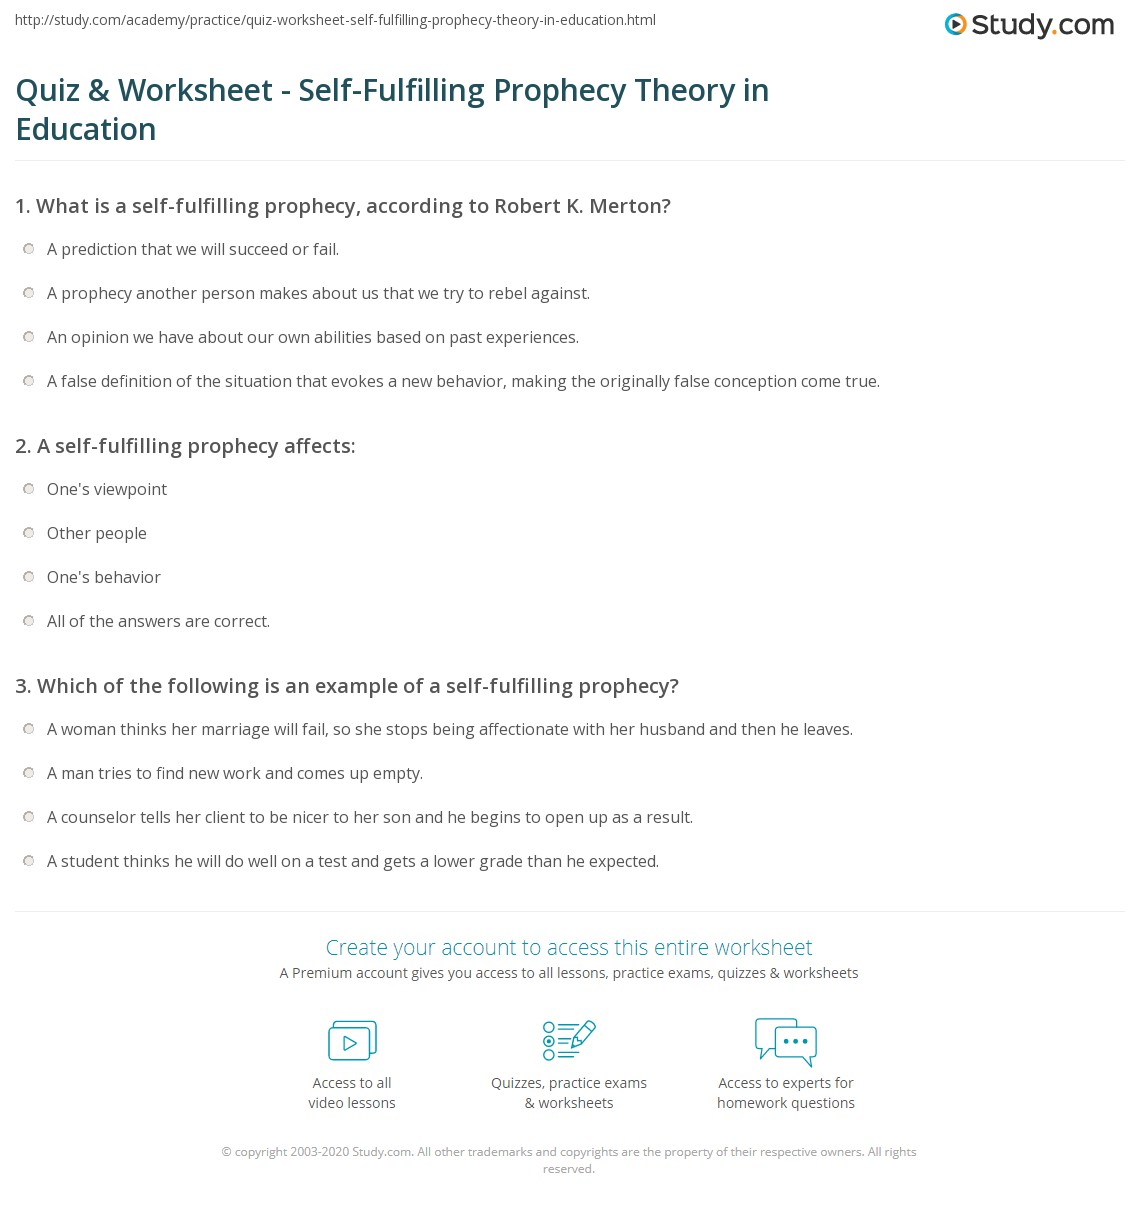 Quiz Worksheet Self Fulfilling Prophecy Theory In Education